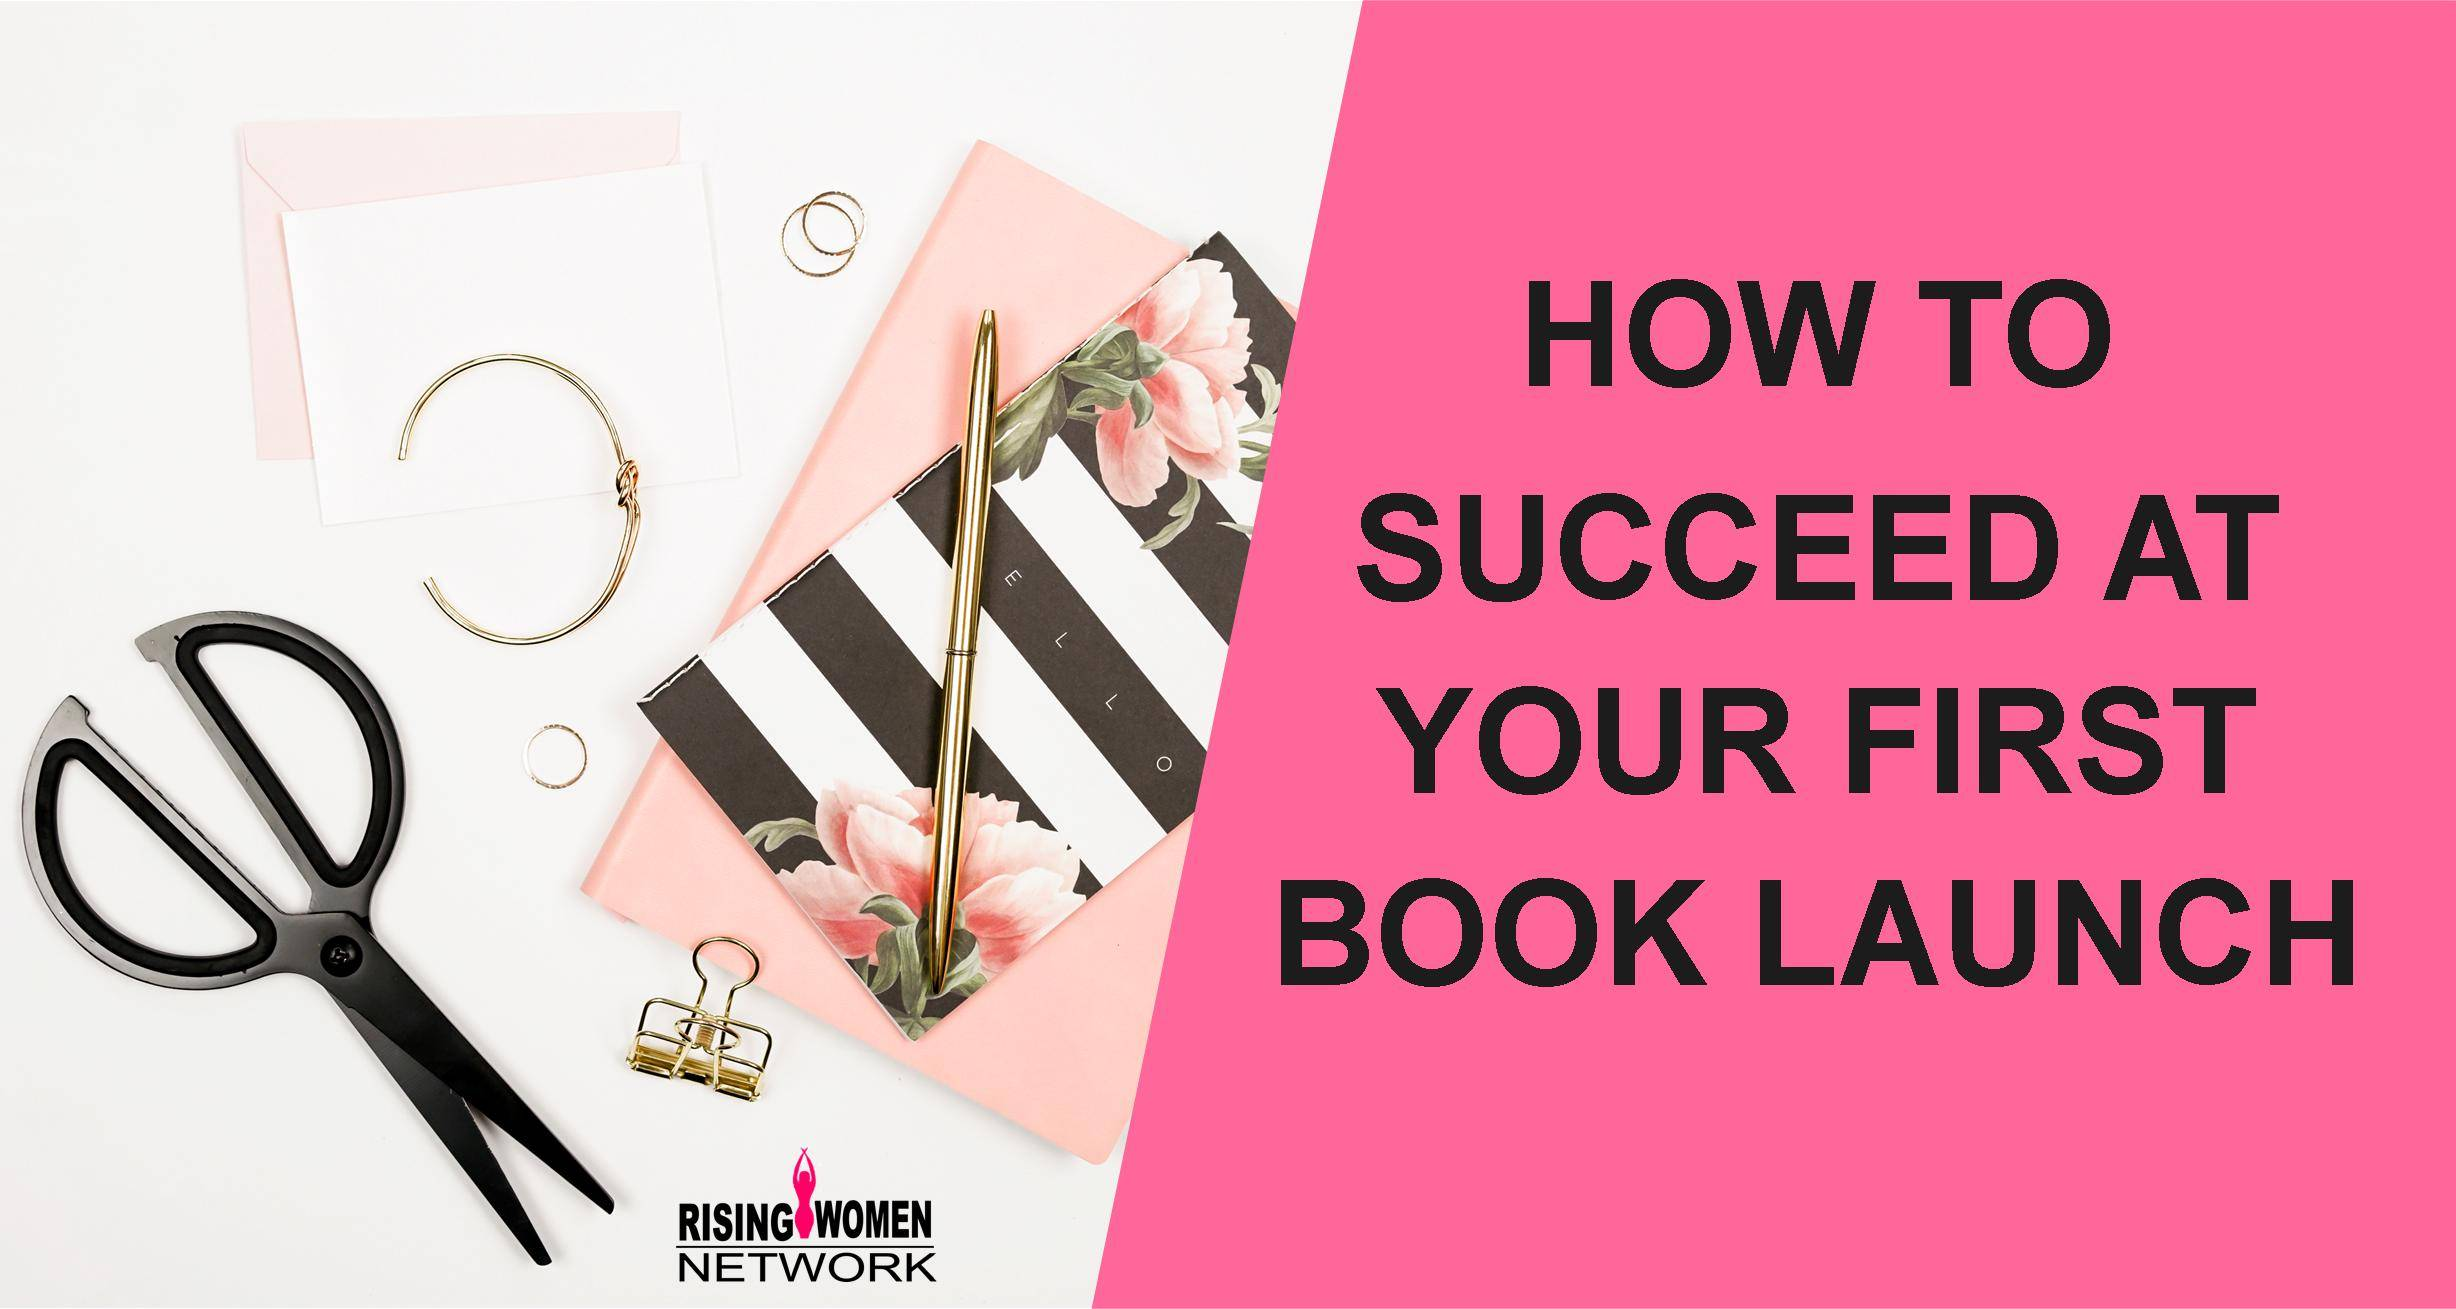 The best thing that I found that worked on my next book launch, was to plan and map it all out — then review afterward to make sure that your next book launch is even more successful.